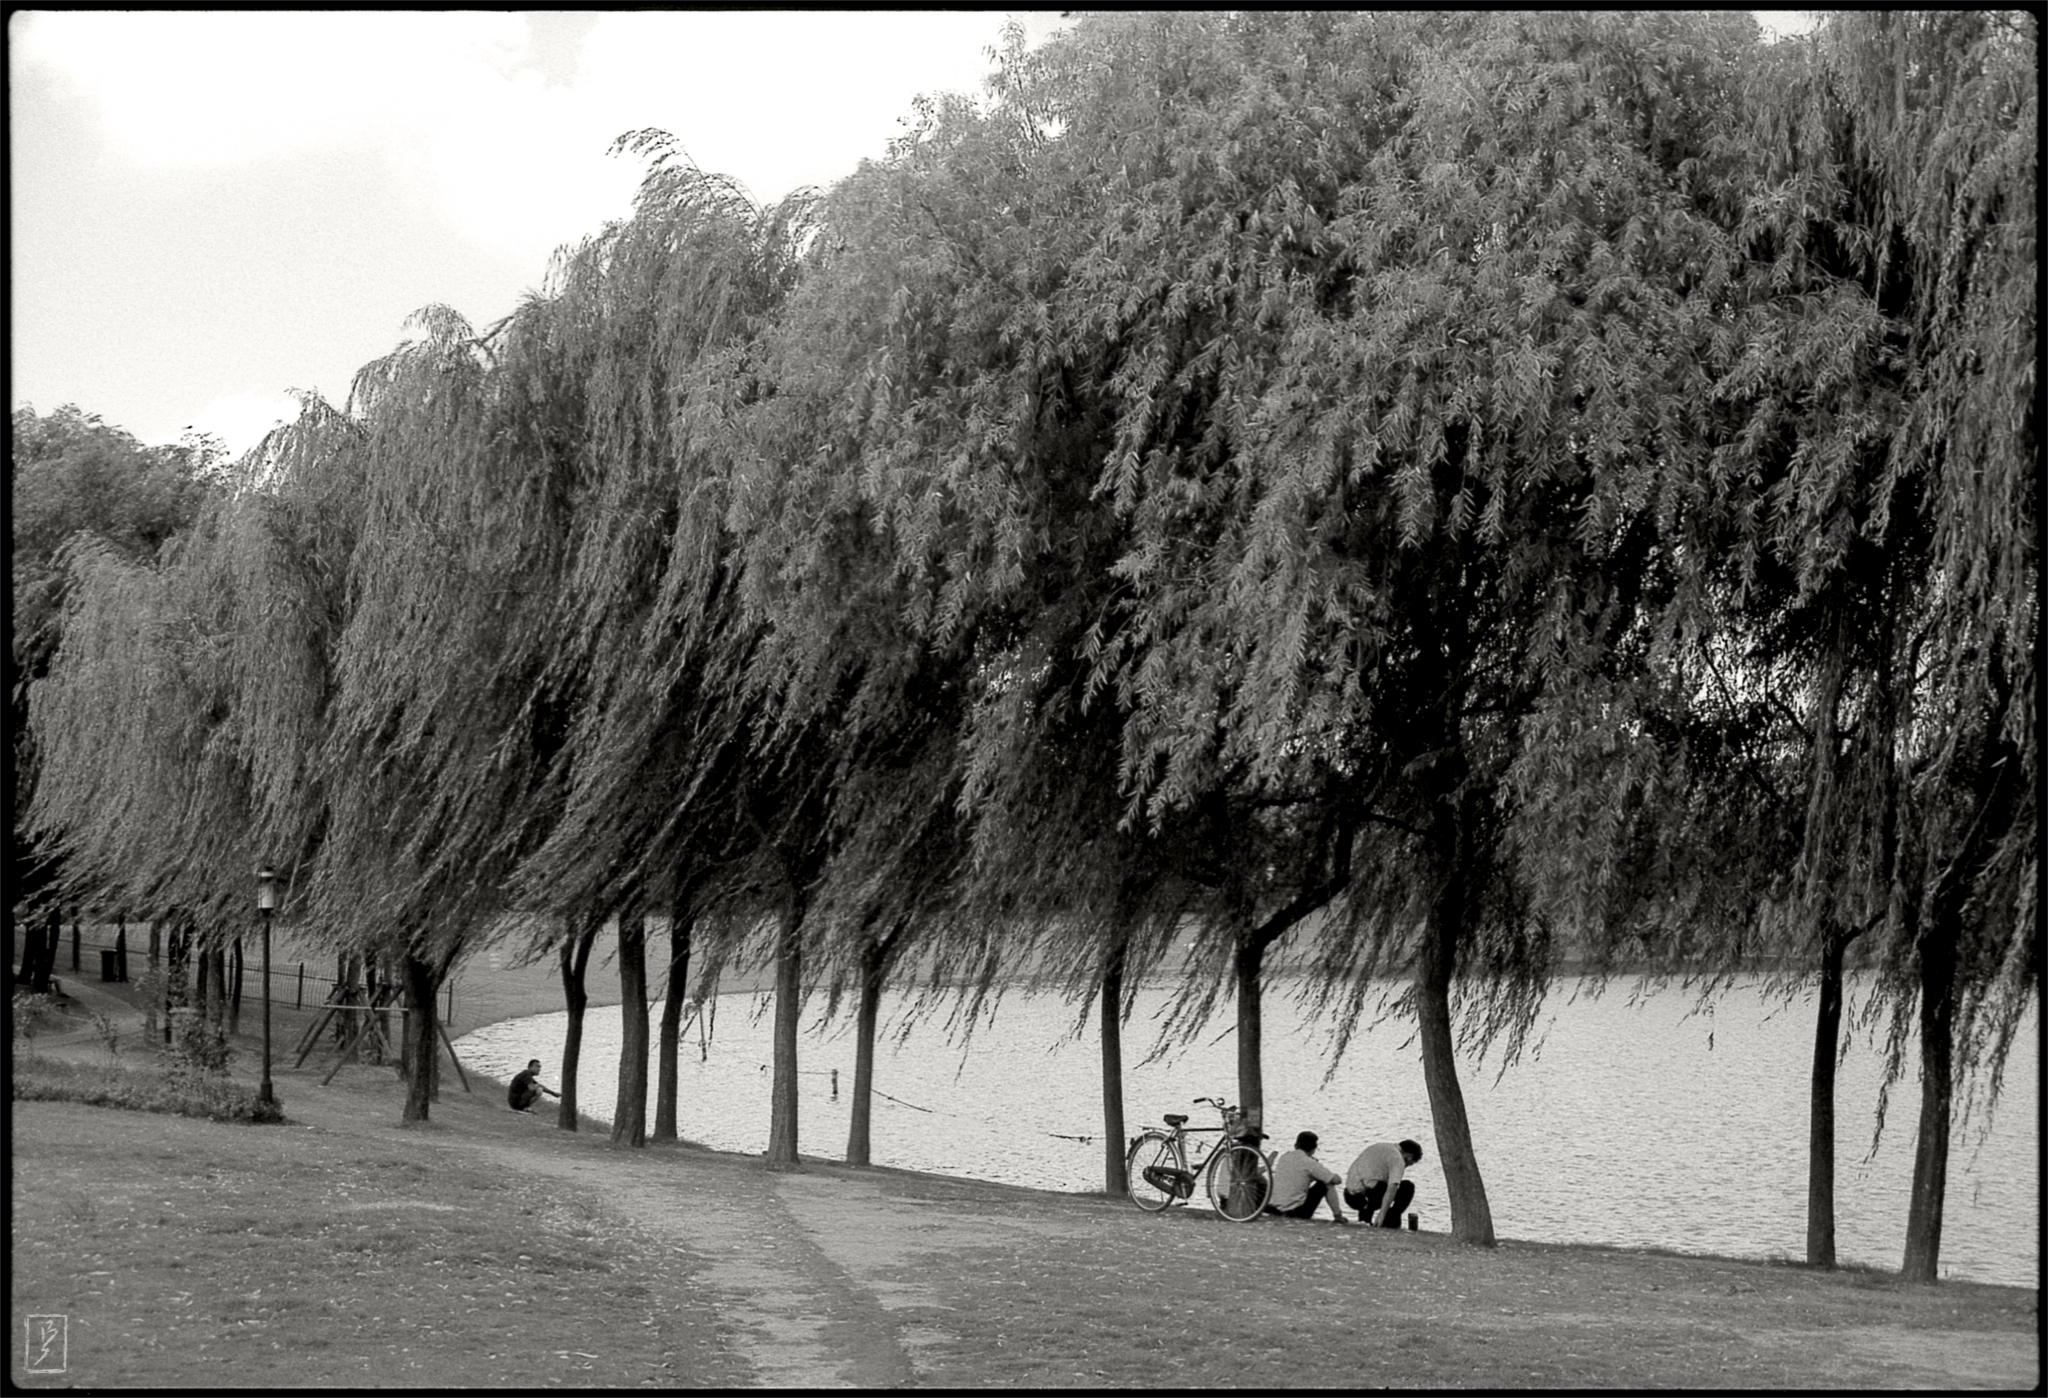 Huangxing park (黄兴公园): Having a break under the trees near the lake.